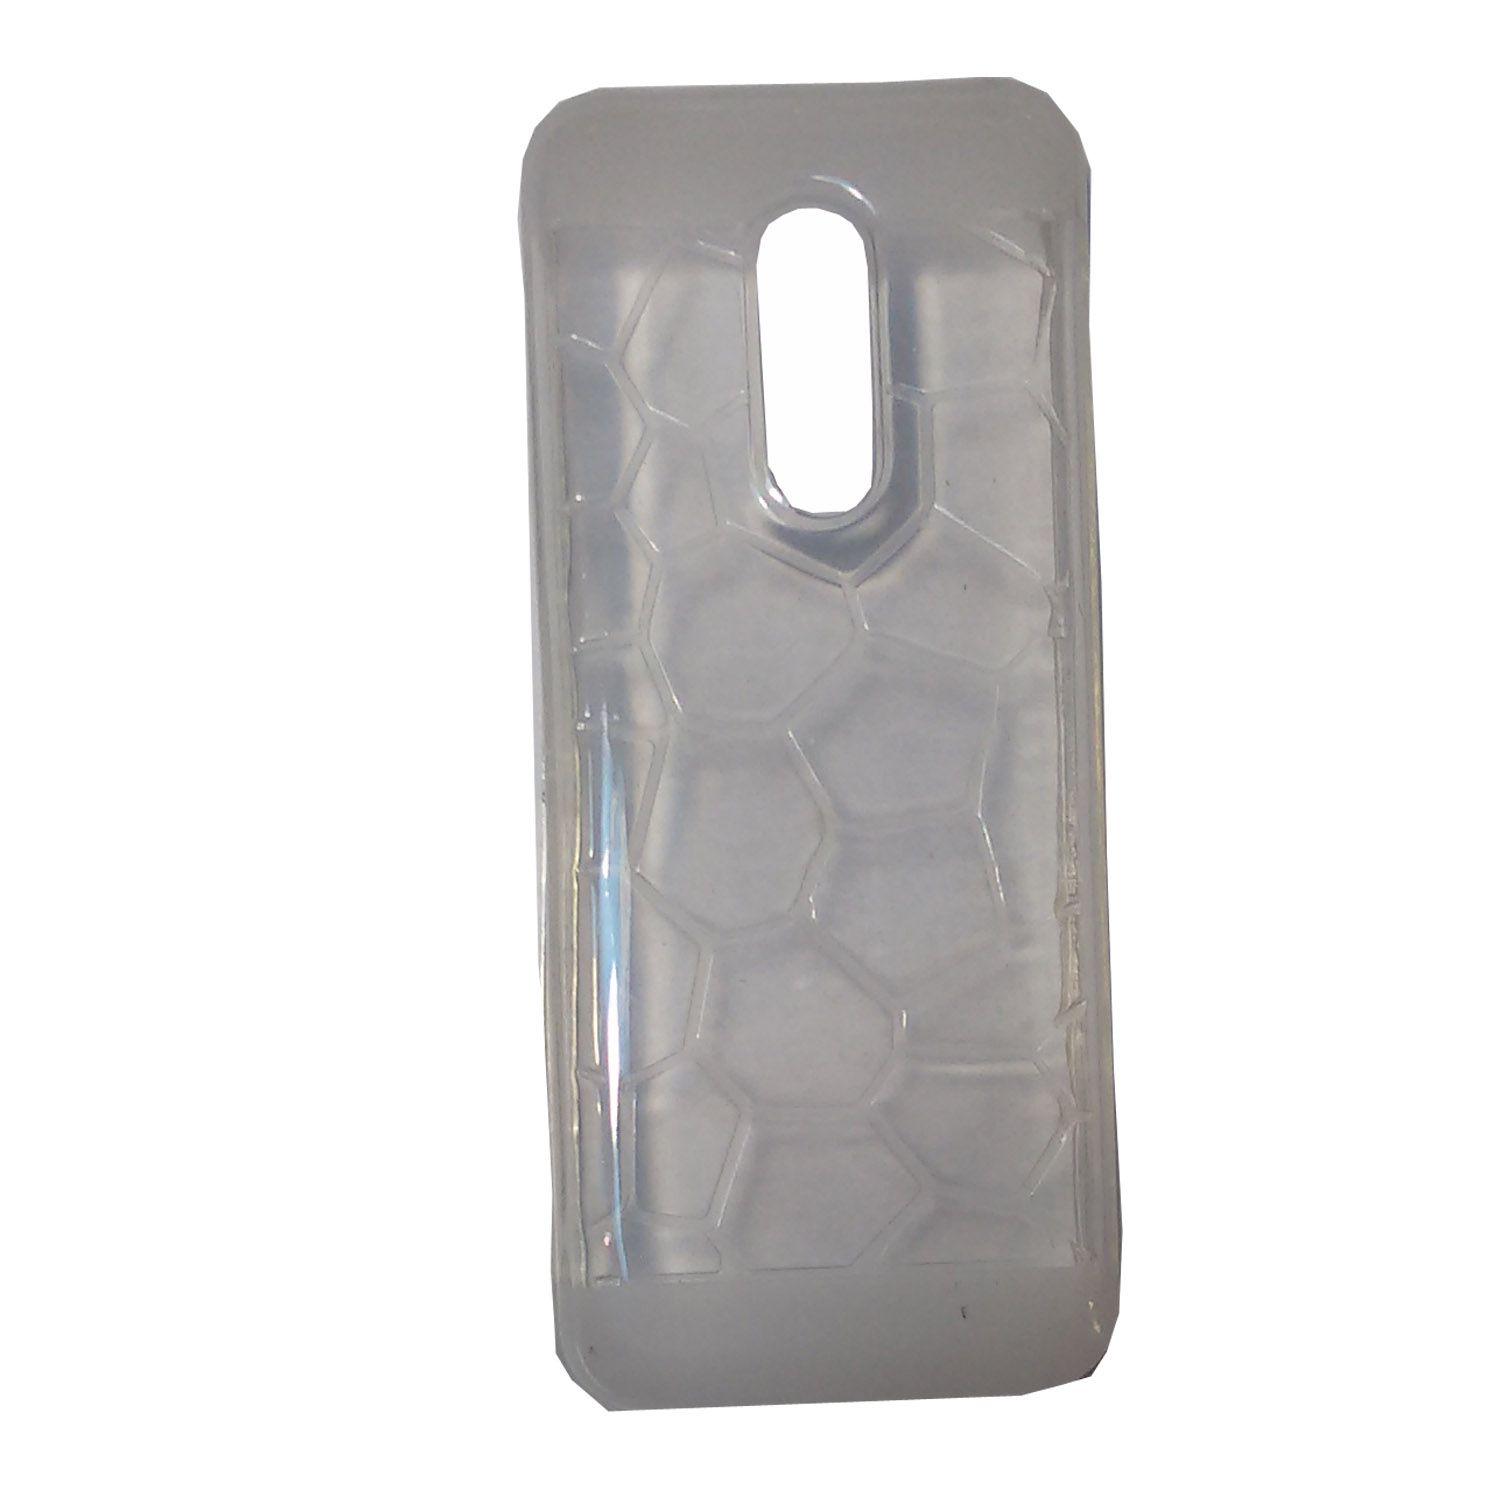 new products fd3c9 98156 Nokia 130 Cover by Colorkart - Grey